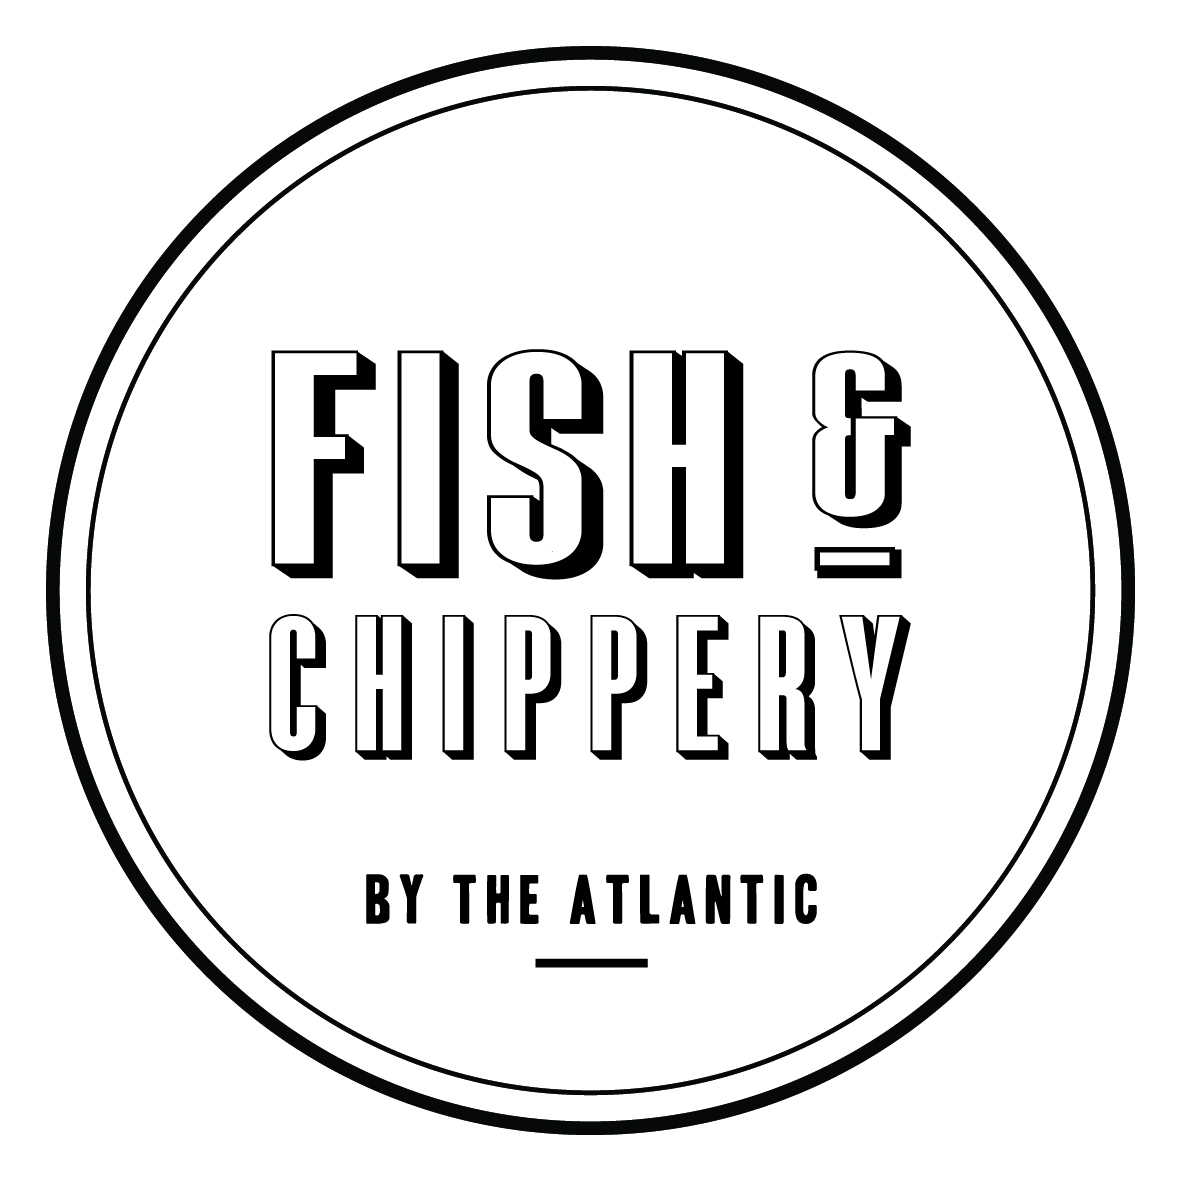 Logo of Fish & Chippery by The Atlantic